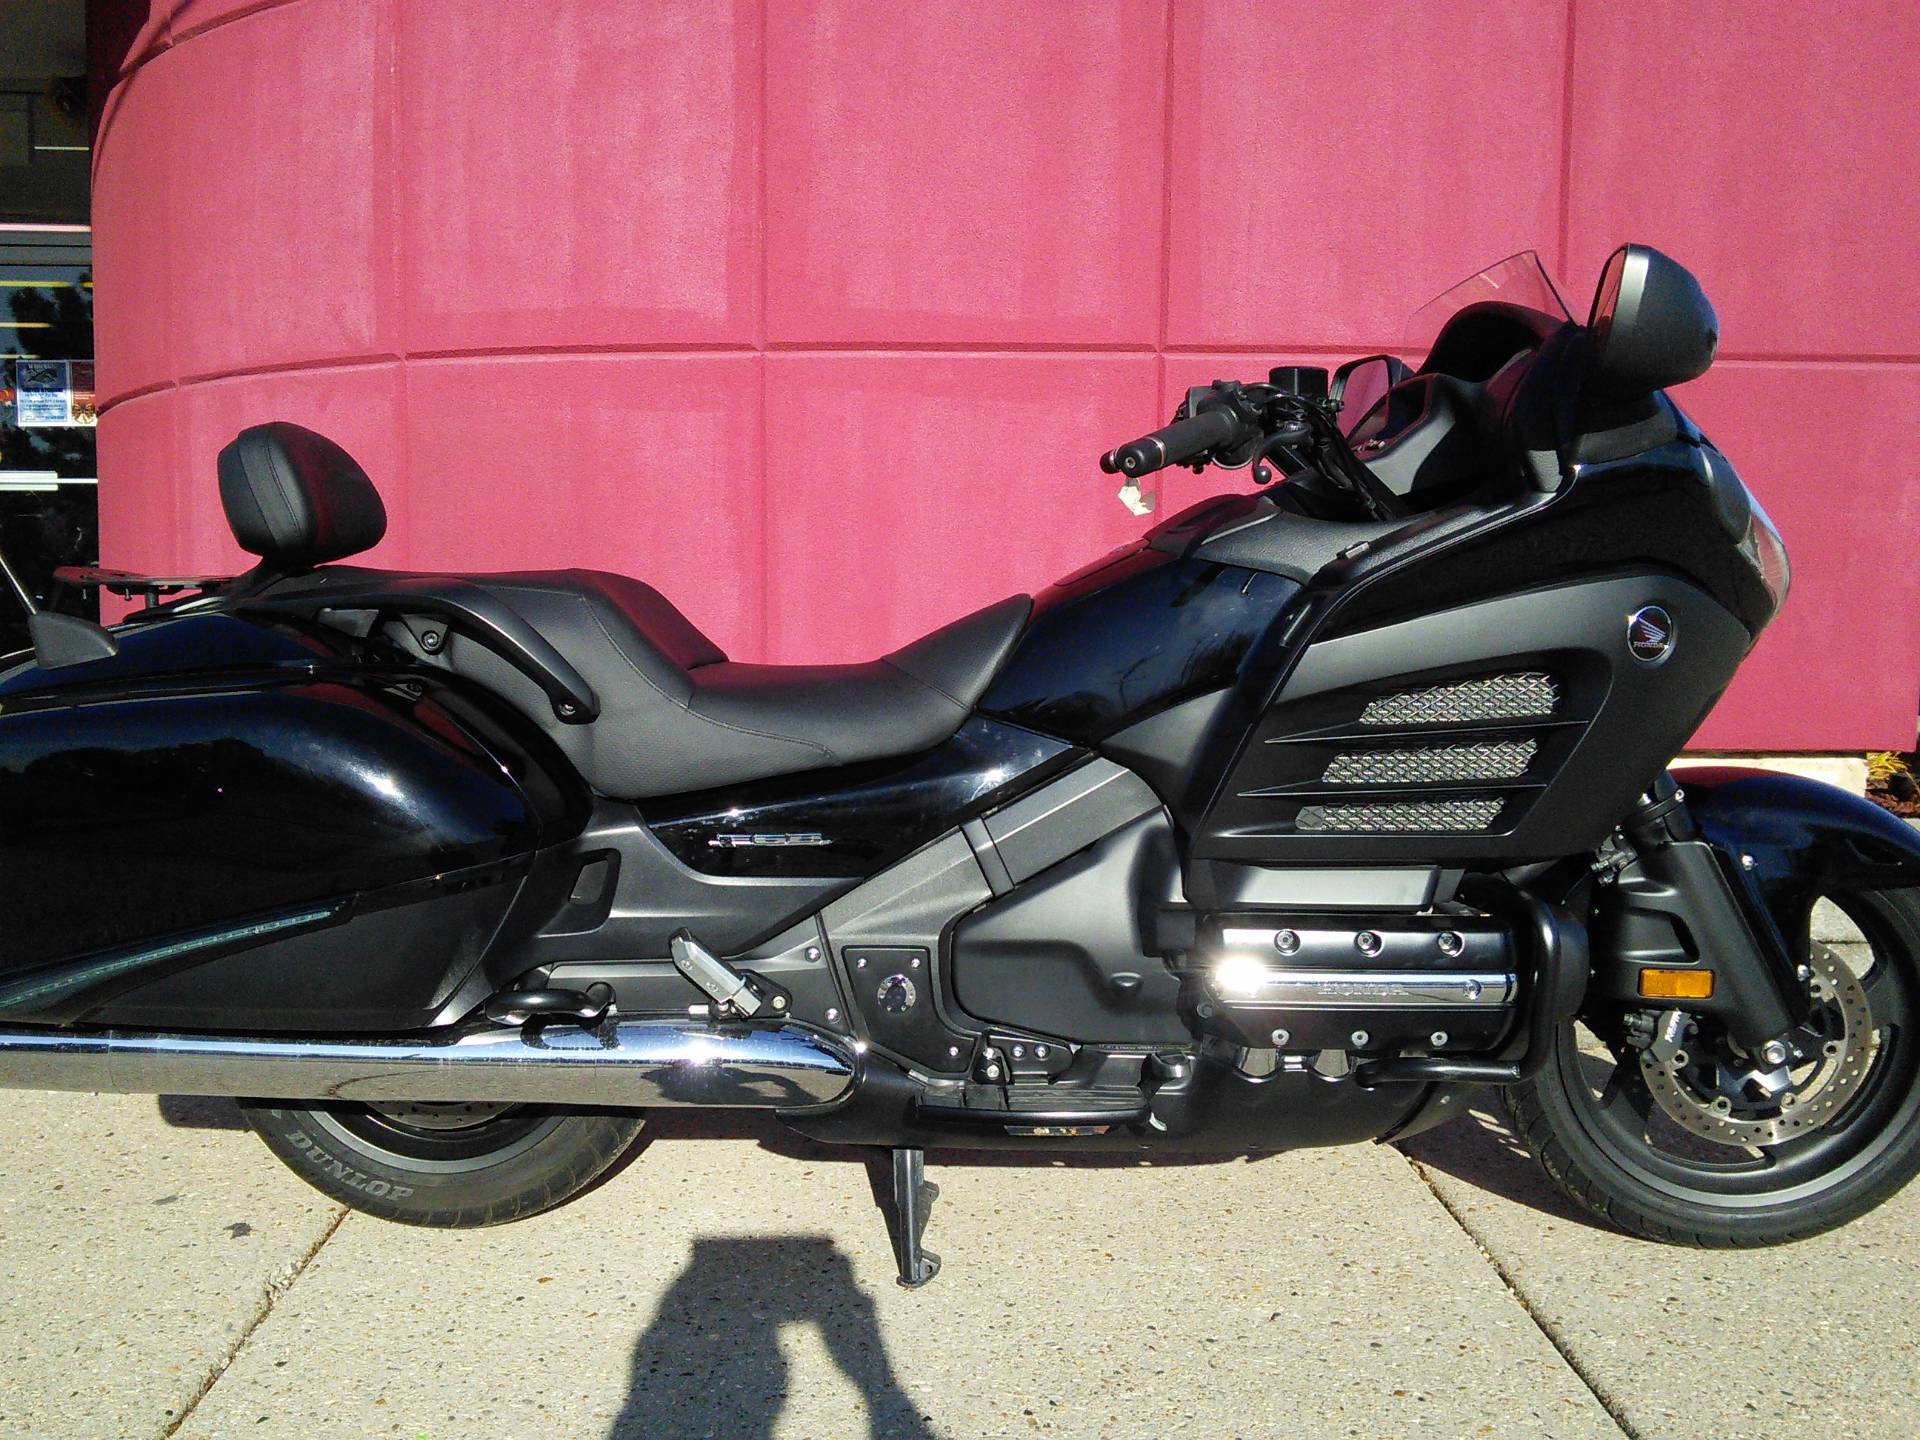 Used 2013 honda gold wing f6b deluxe motorcycles in des for Honda des plaines